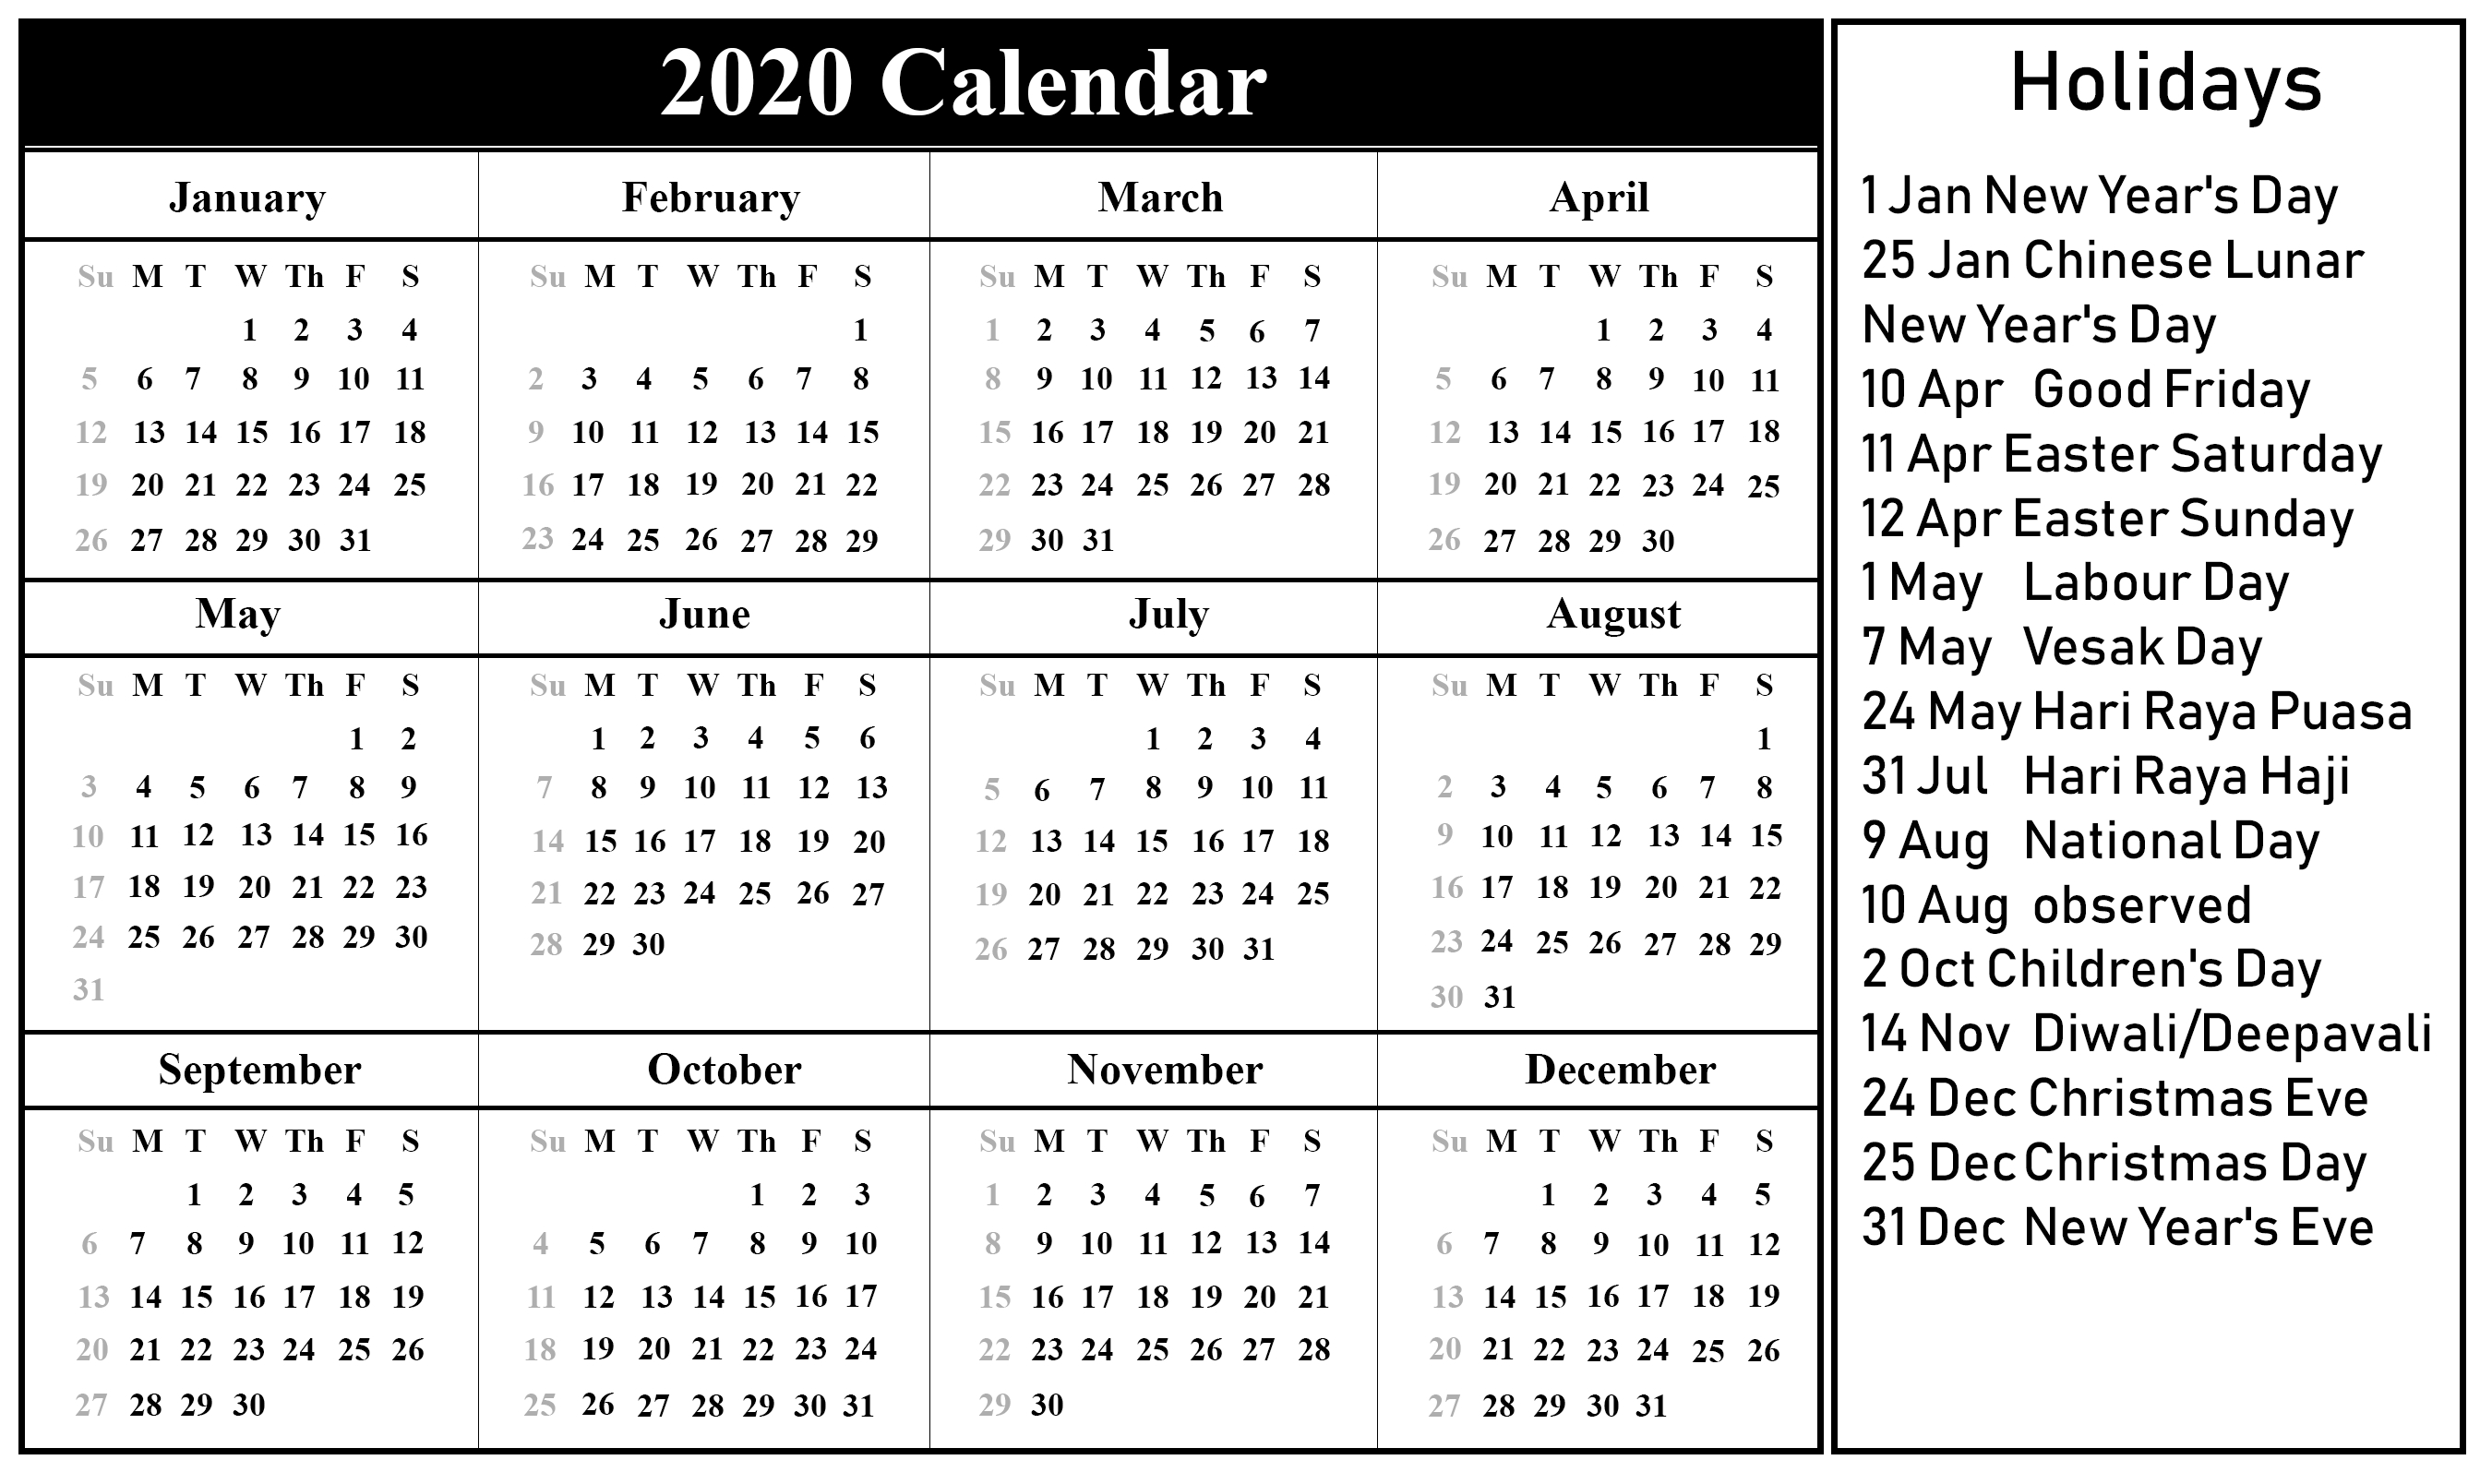 National Day Calendar 2020 | 2020 Calendar-National Day Calendar January 2020